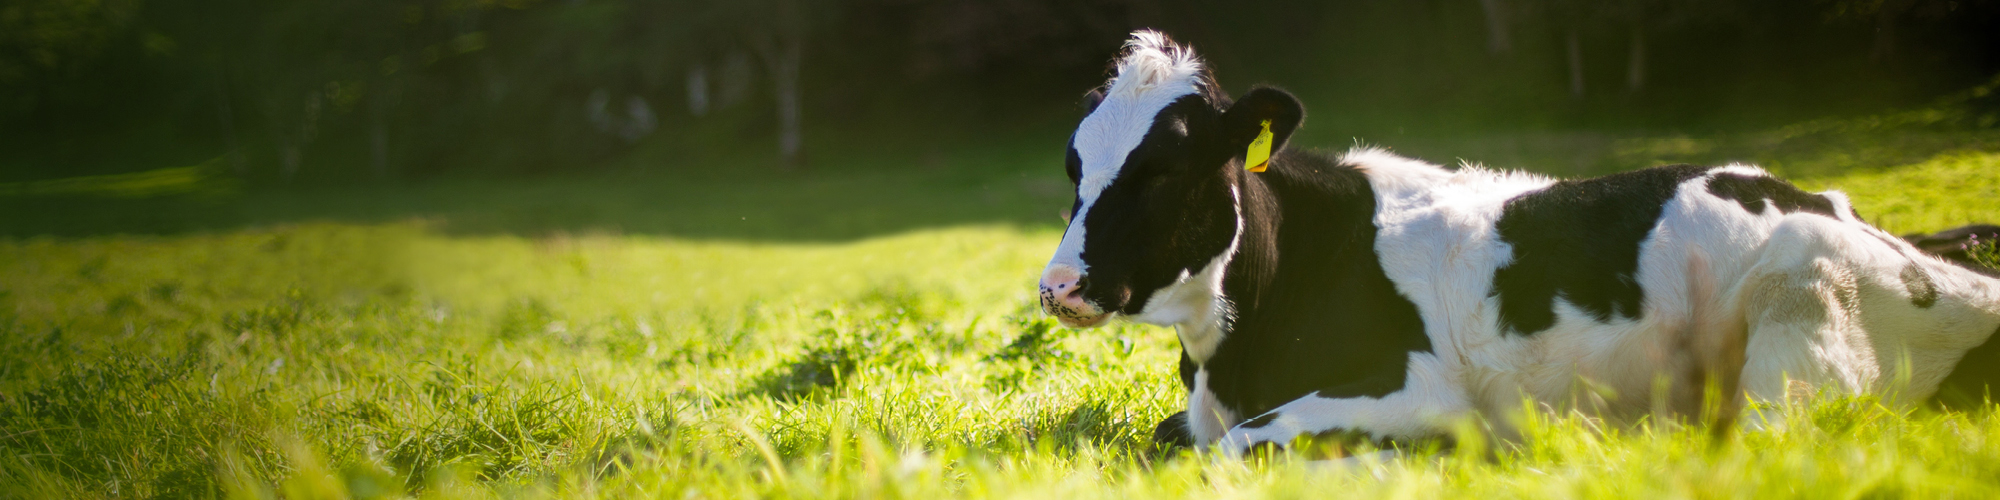 Dairy cow laying in field fo grass